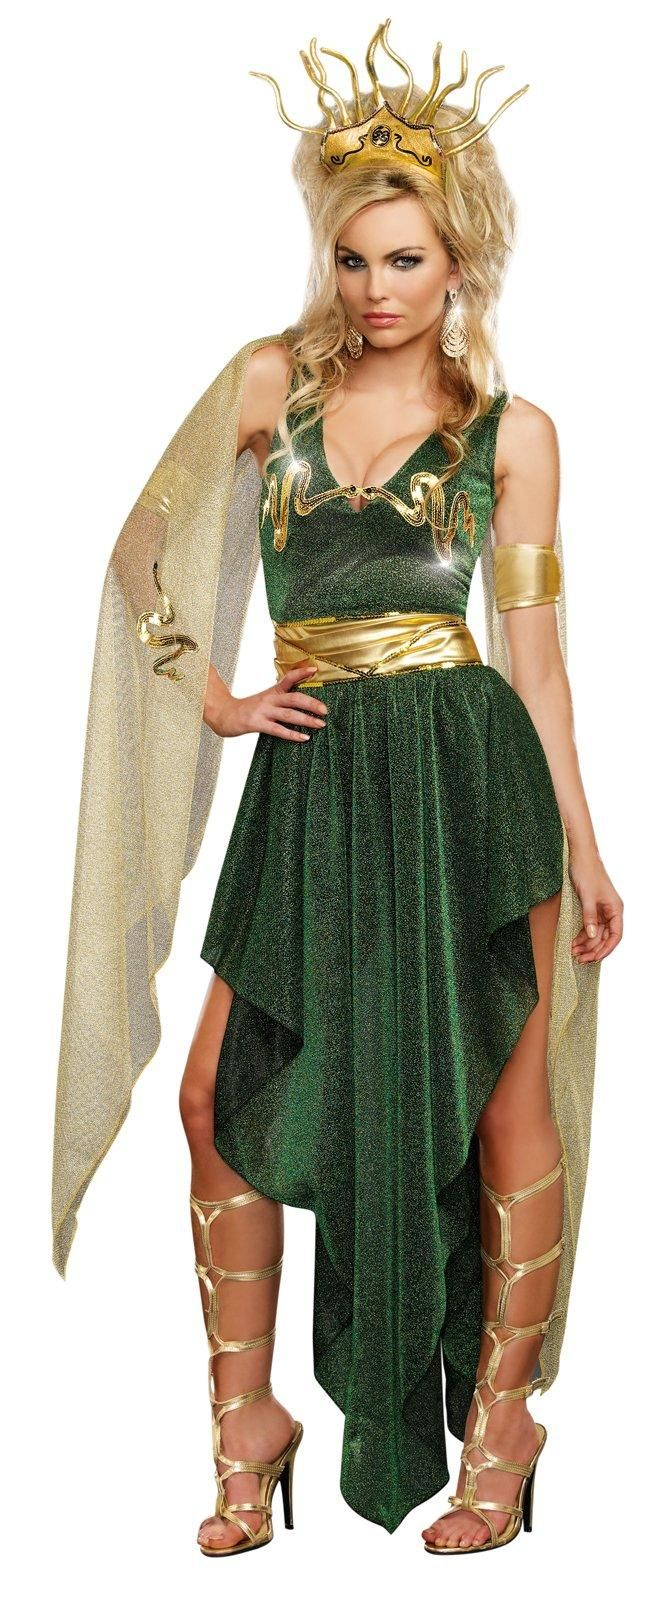 Sultry Medusa Costume | Costumes, Halloween costumes and Halloween ...